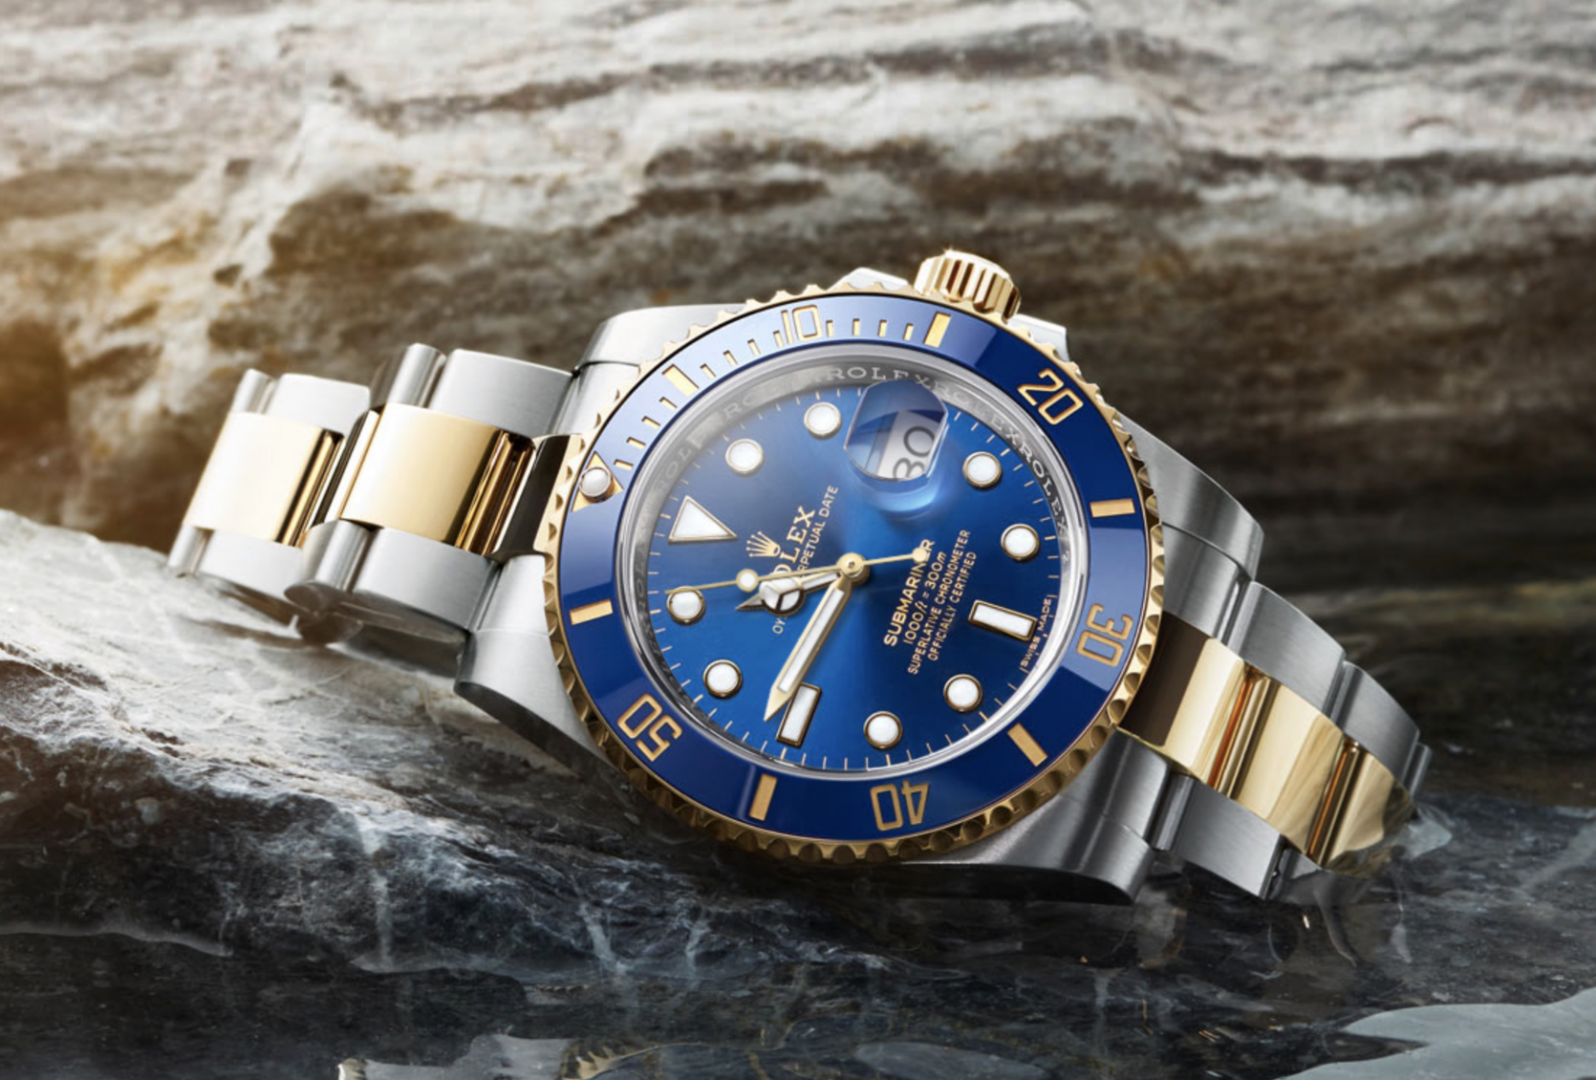 The Rolex Submariner steel and yellow gold will set you back around £10,000 but will last indefinitely if looked after. It will also appreciate in value over the years.